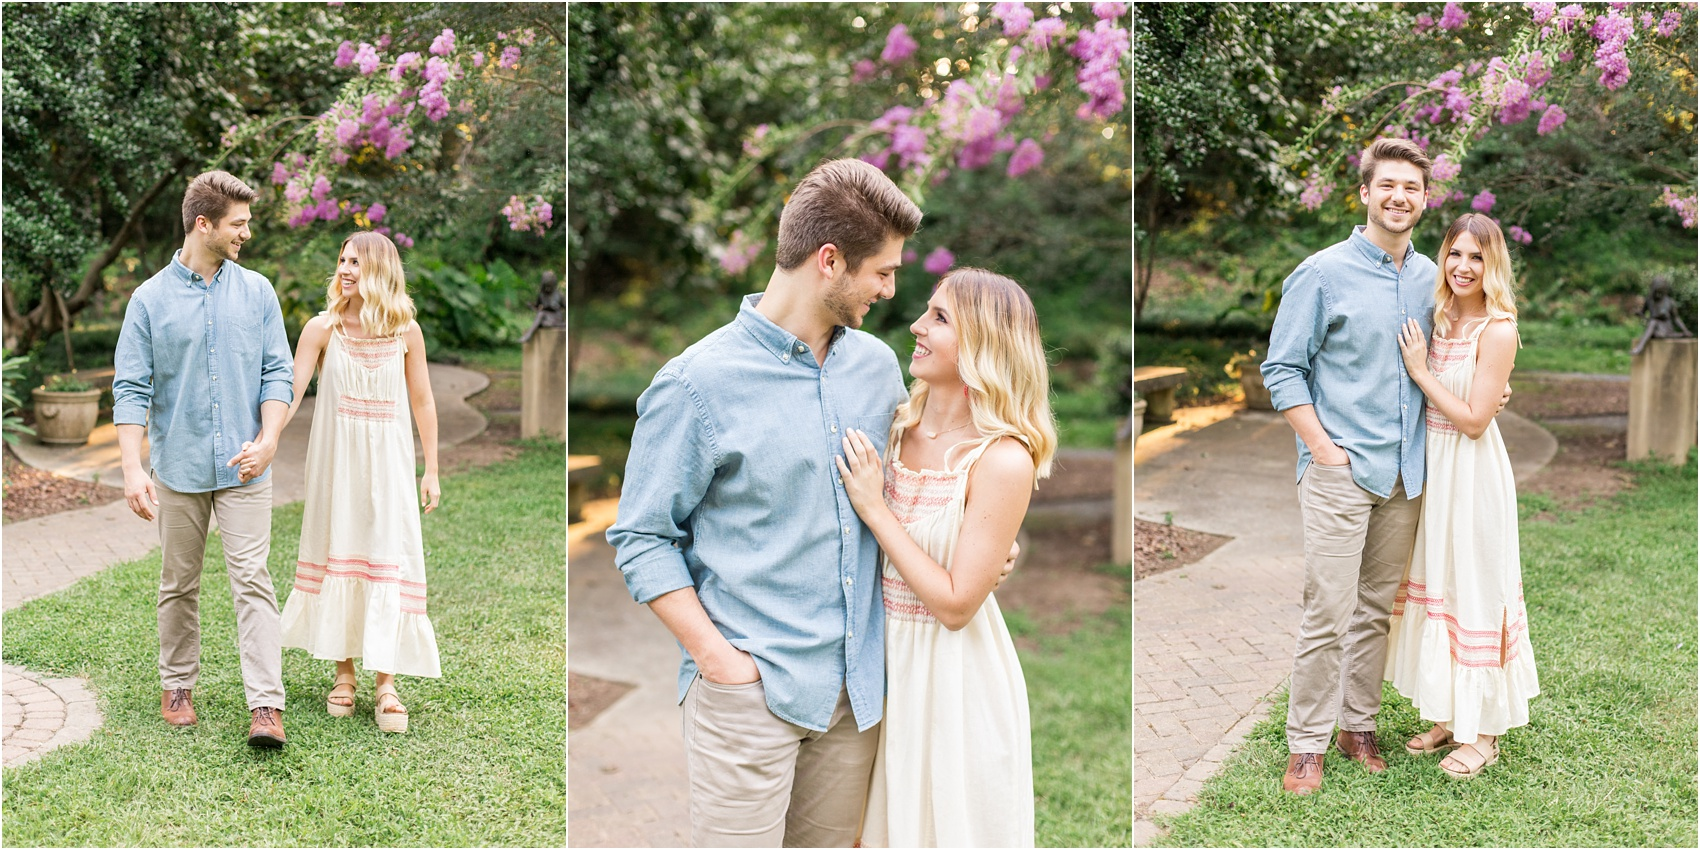 Savannah Eve Photography- Lauren & Chase @ CWG-15.jpg